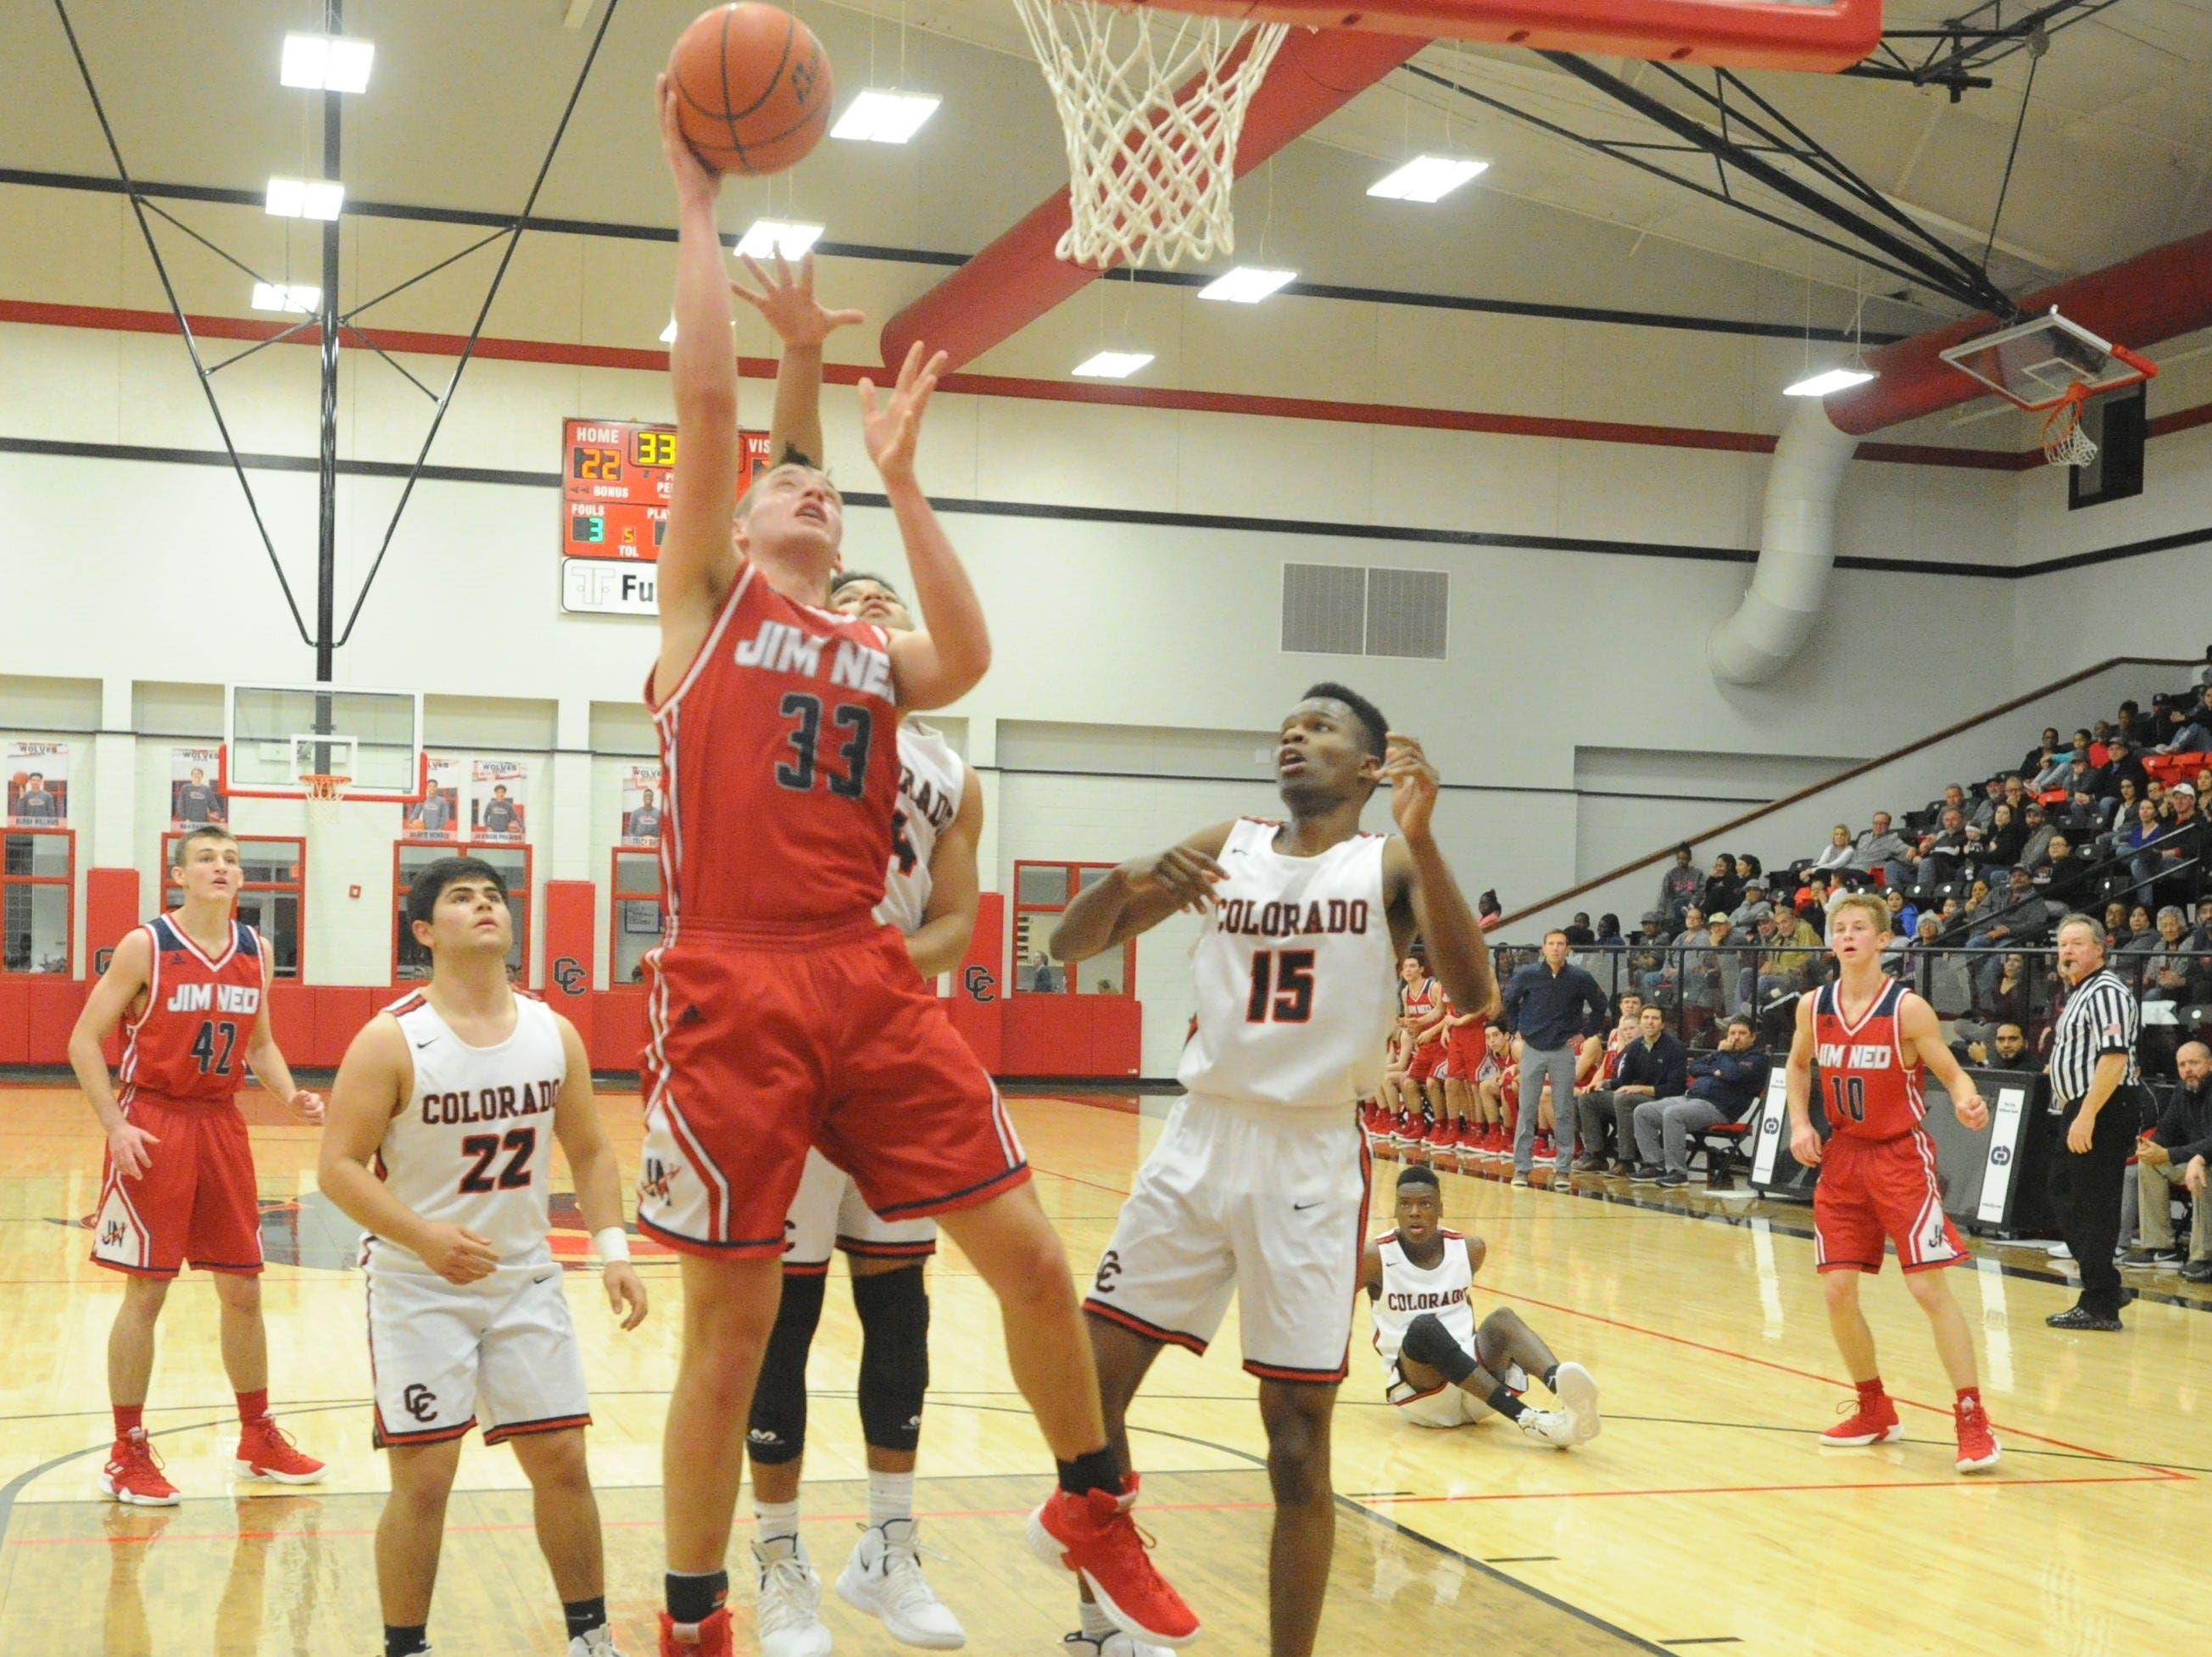 Jim Ned's Dylan Bryant scores in the paint against Colorado City. The Indians topped the Wolves 46-41 at Colorado High School on Jan. 15, 2019.